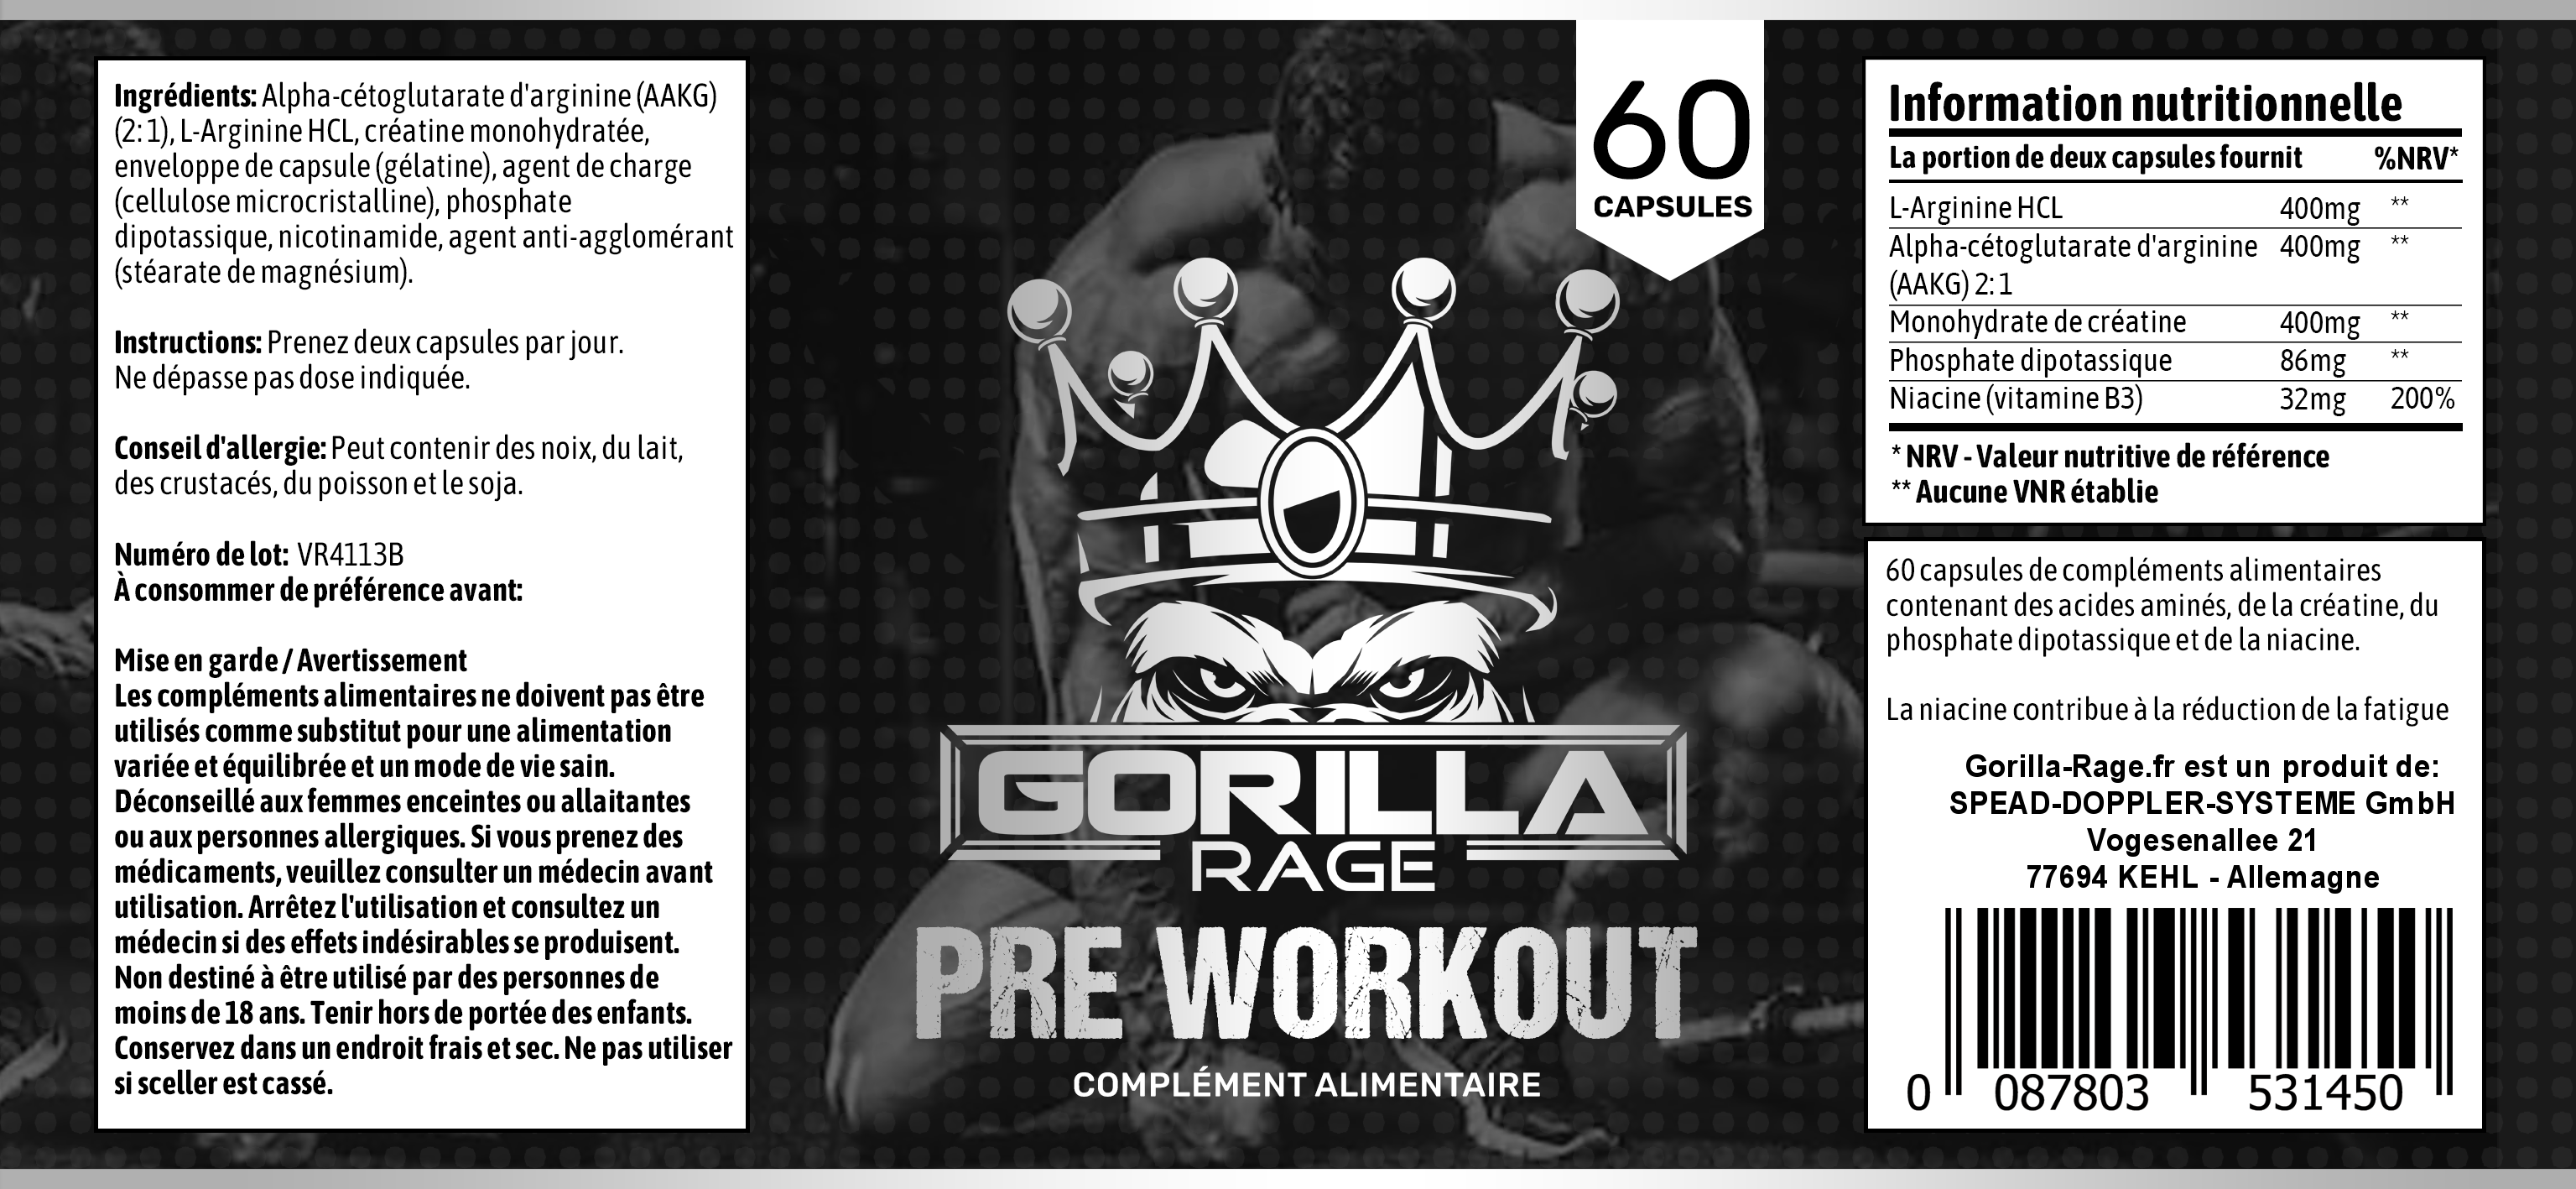 Preworkout French Label 2